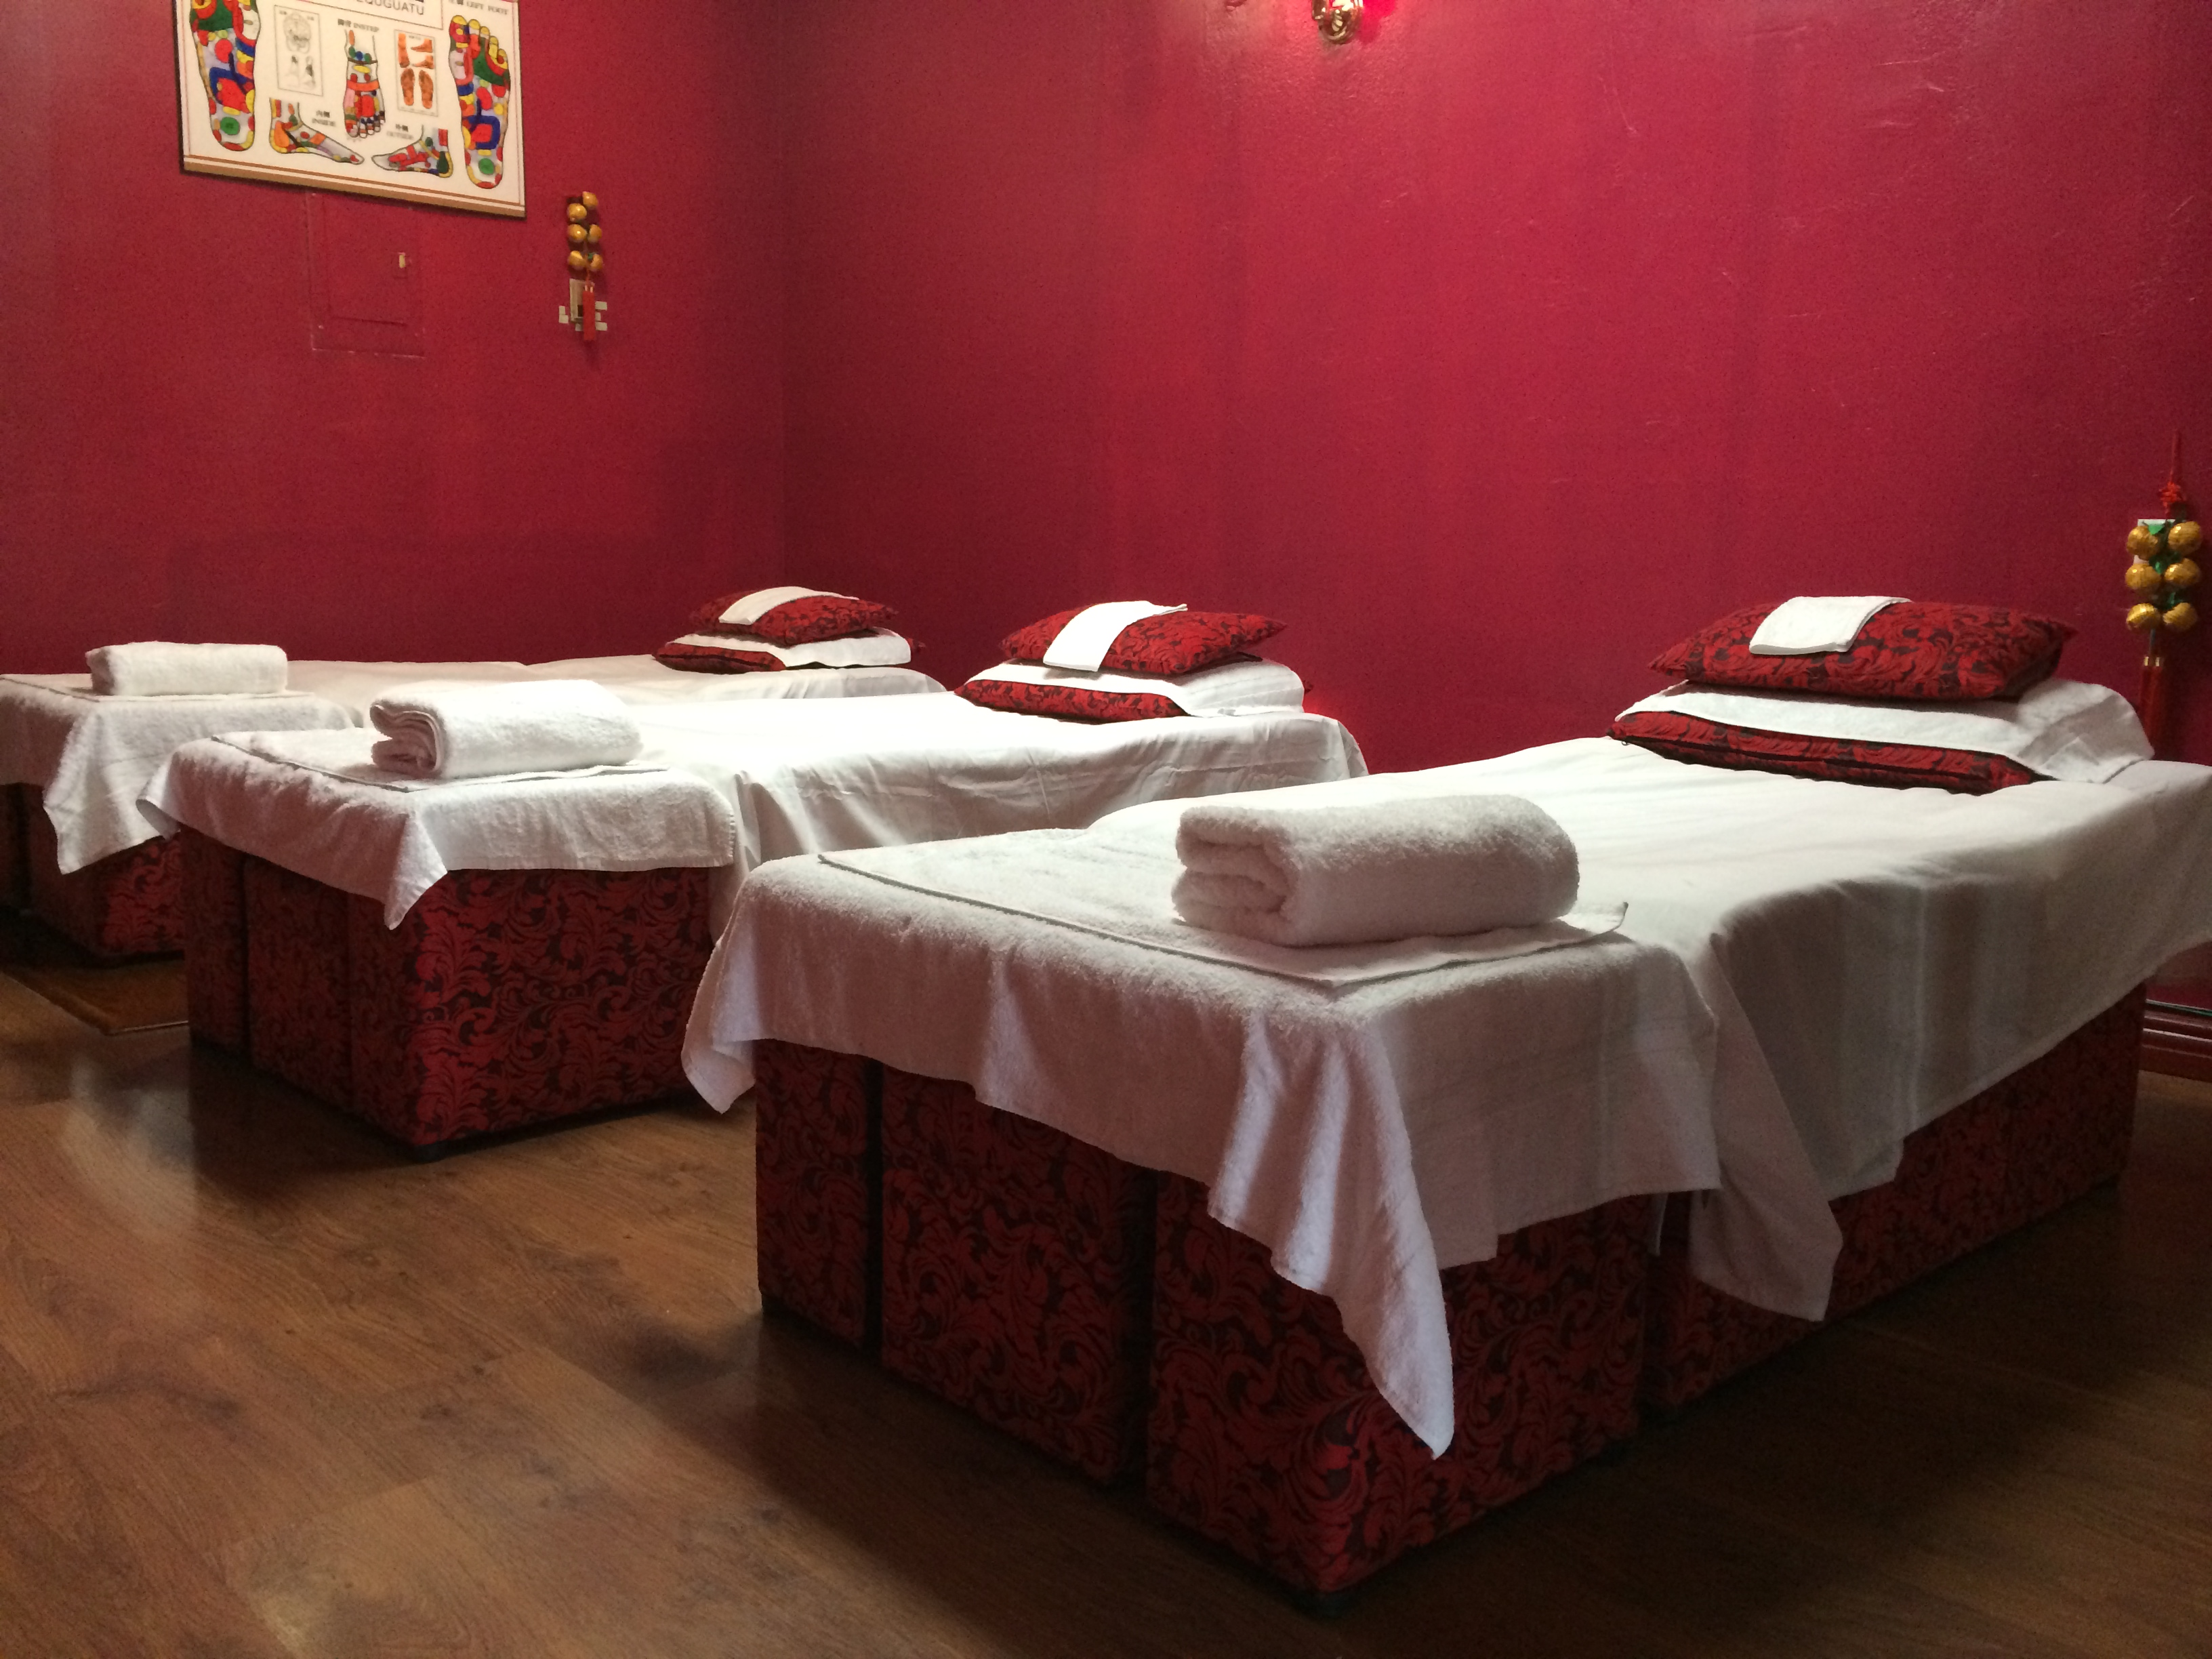 Massage in CA Glendale 91205 Seasonal Massage 1428 E Colorado Blvd Suite B  (818)242-2208